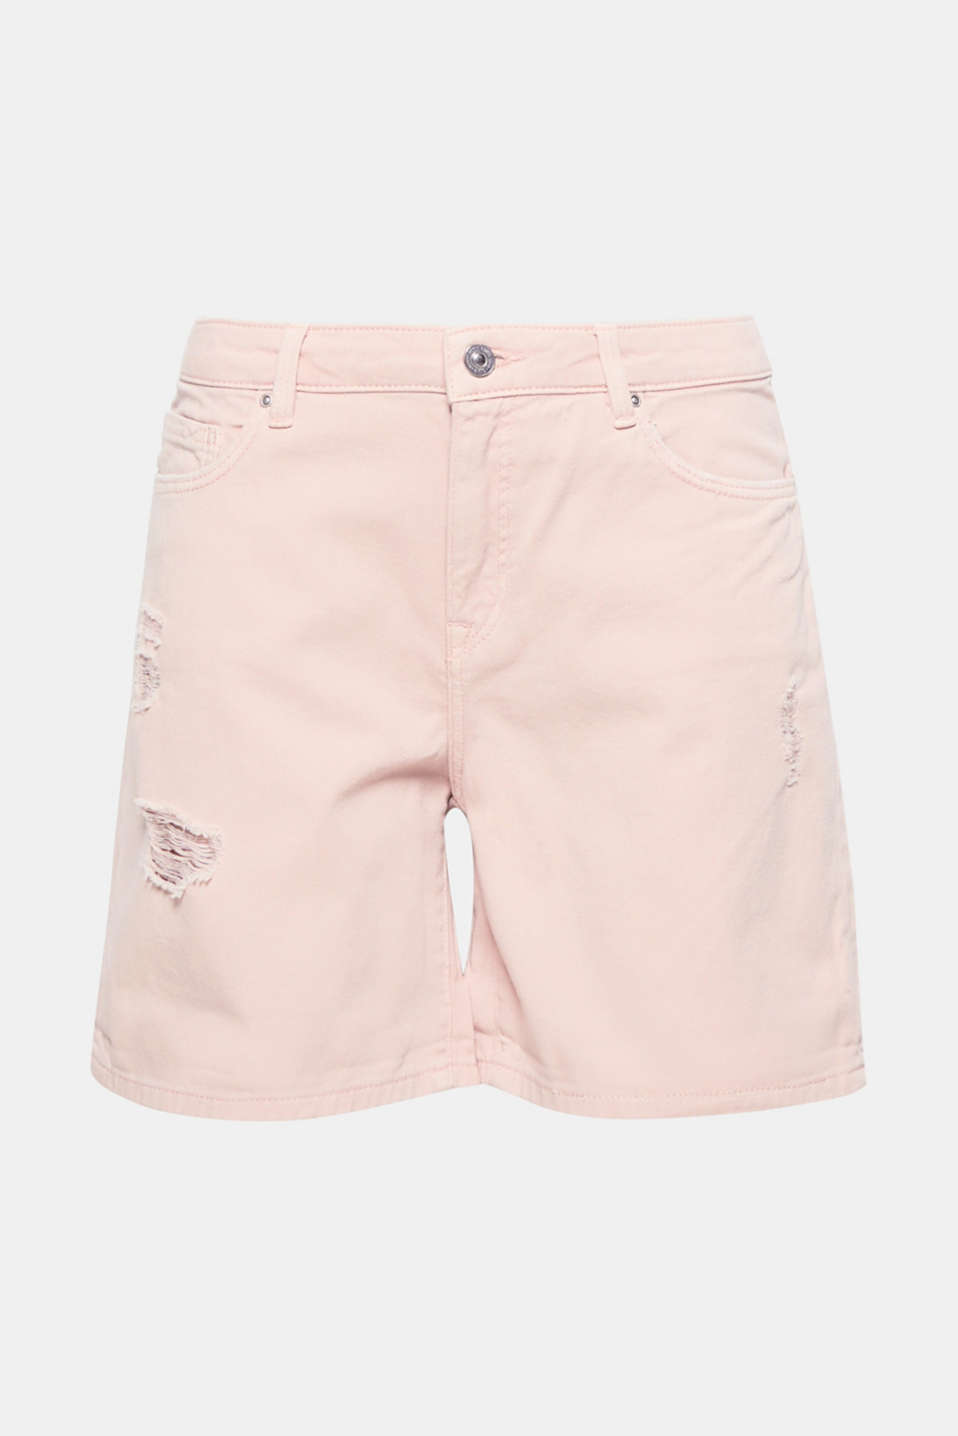 Deze luchtige short van destroyed katoenen denim is perfect om comfortabel en casual de warme dagen door te komen!